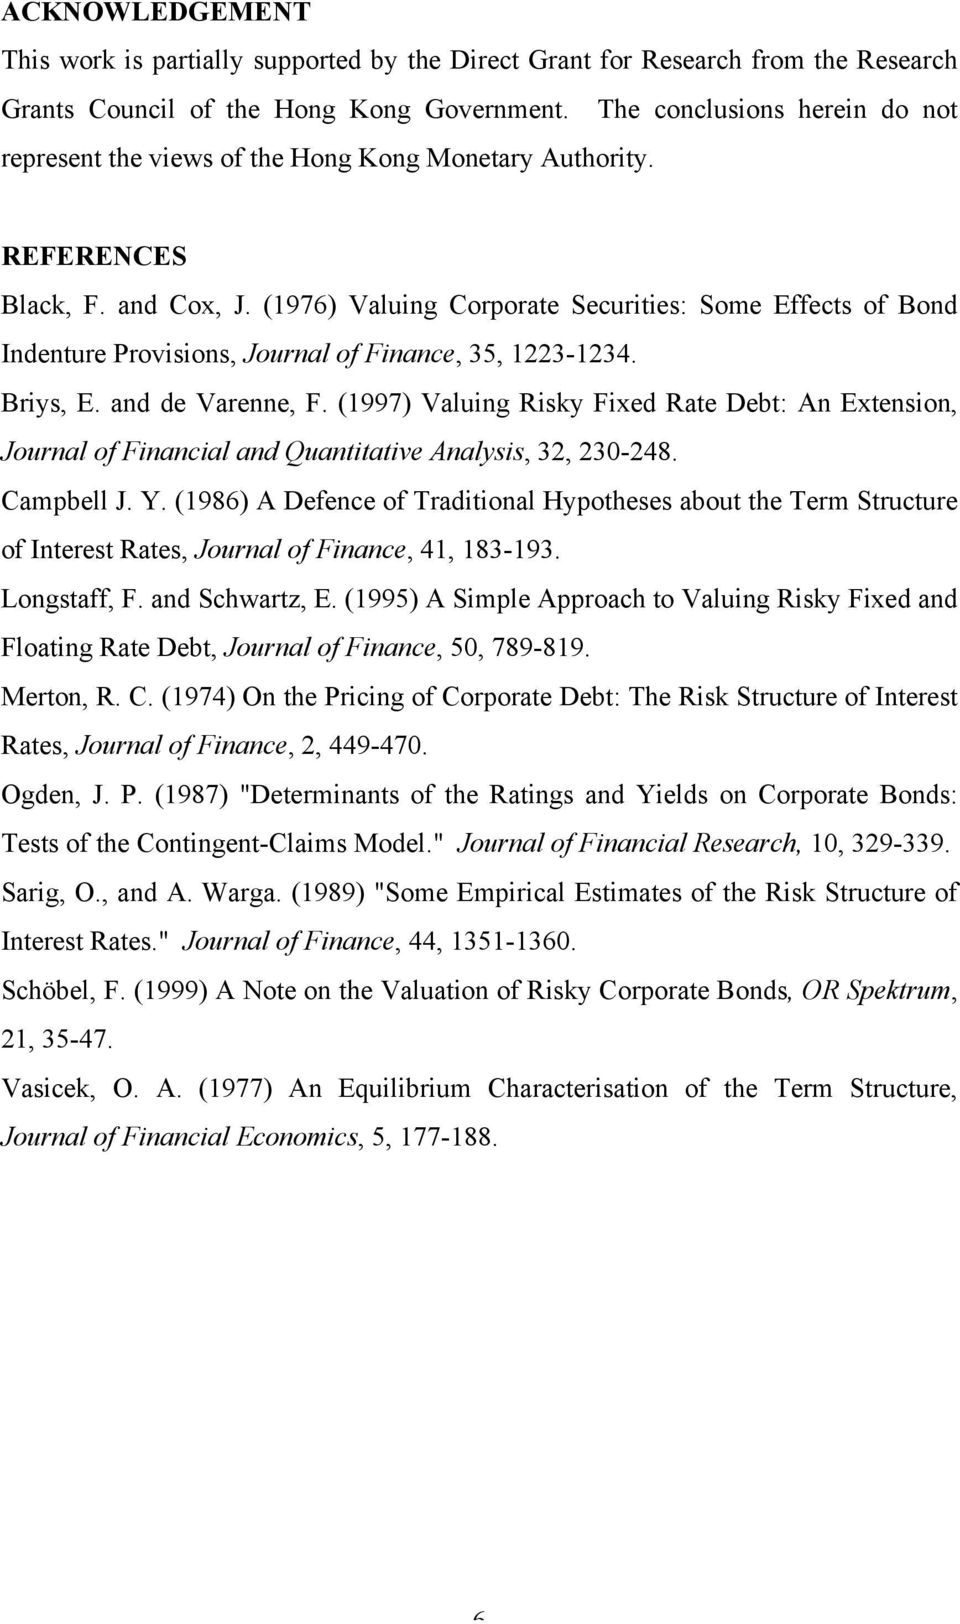 (976) Valuing Copoate euities: ome Effets of Bond Indentue Povisions, Jounal of Finane, 5, -4. Biys, E. and de Vaenne, F.